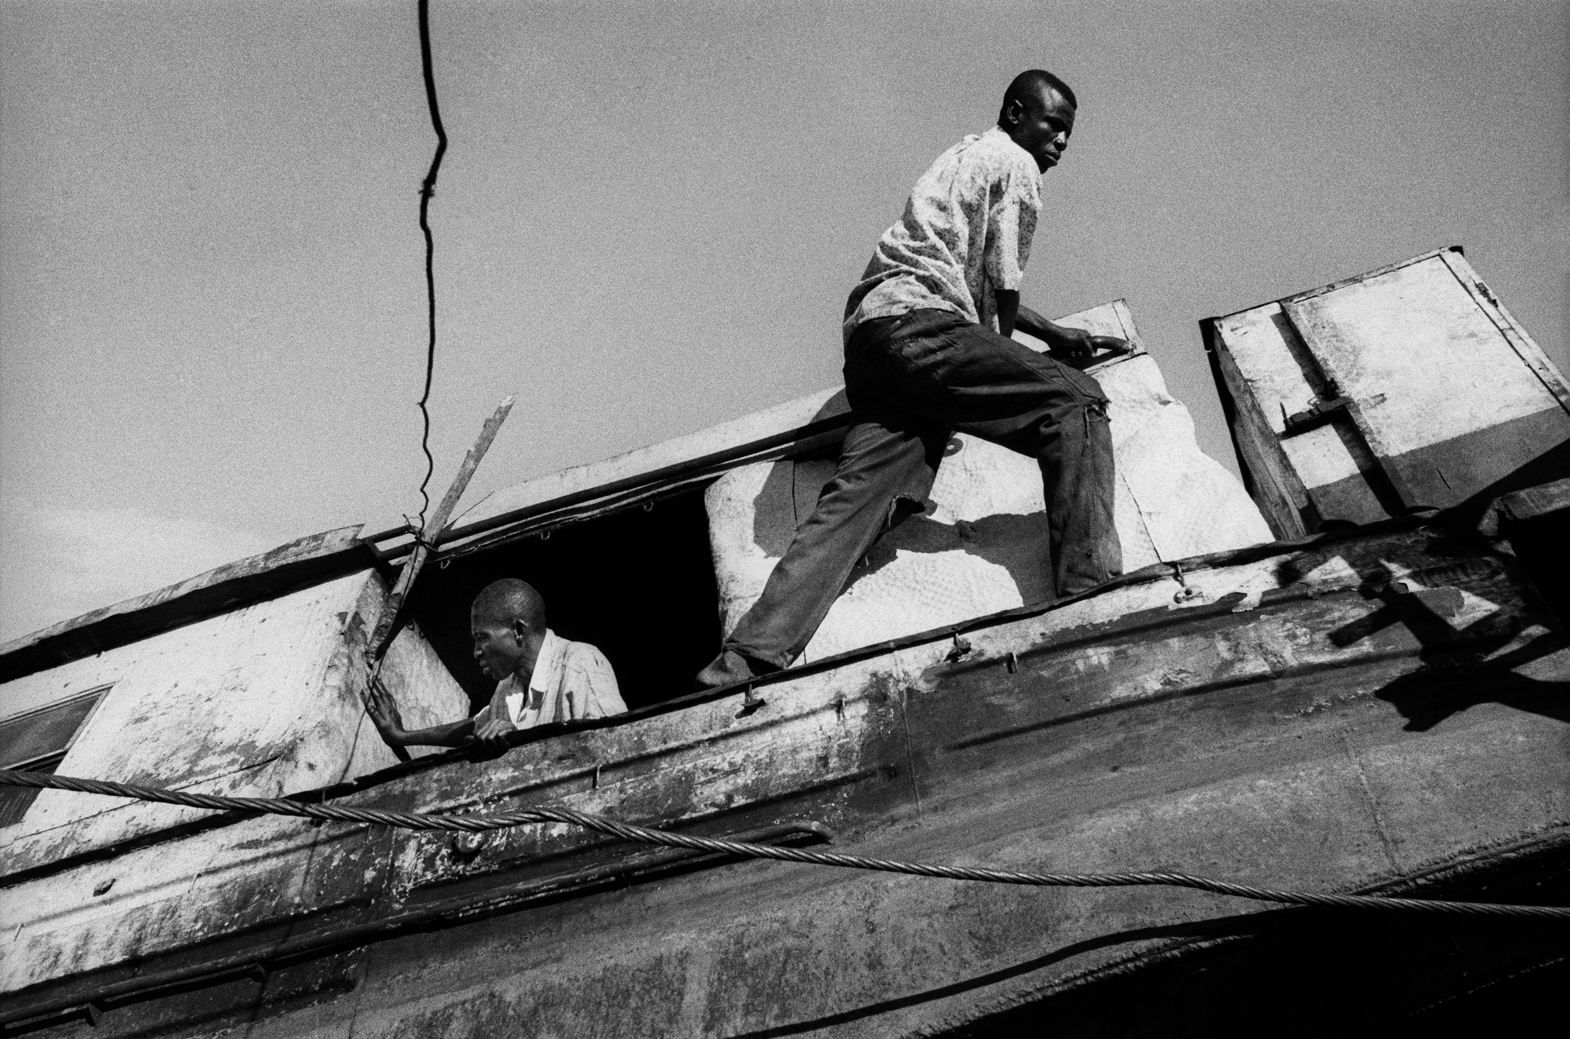 Boat repair on the Tshuapa River, DRCongo 2002